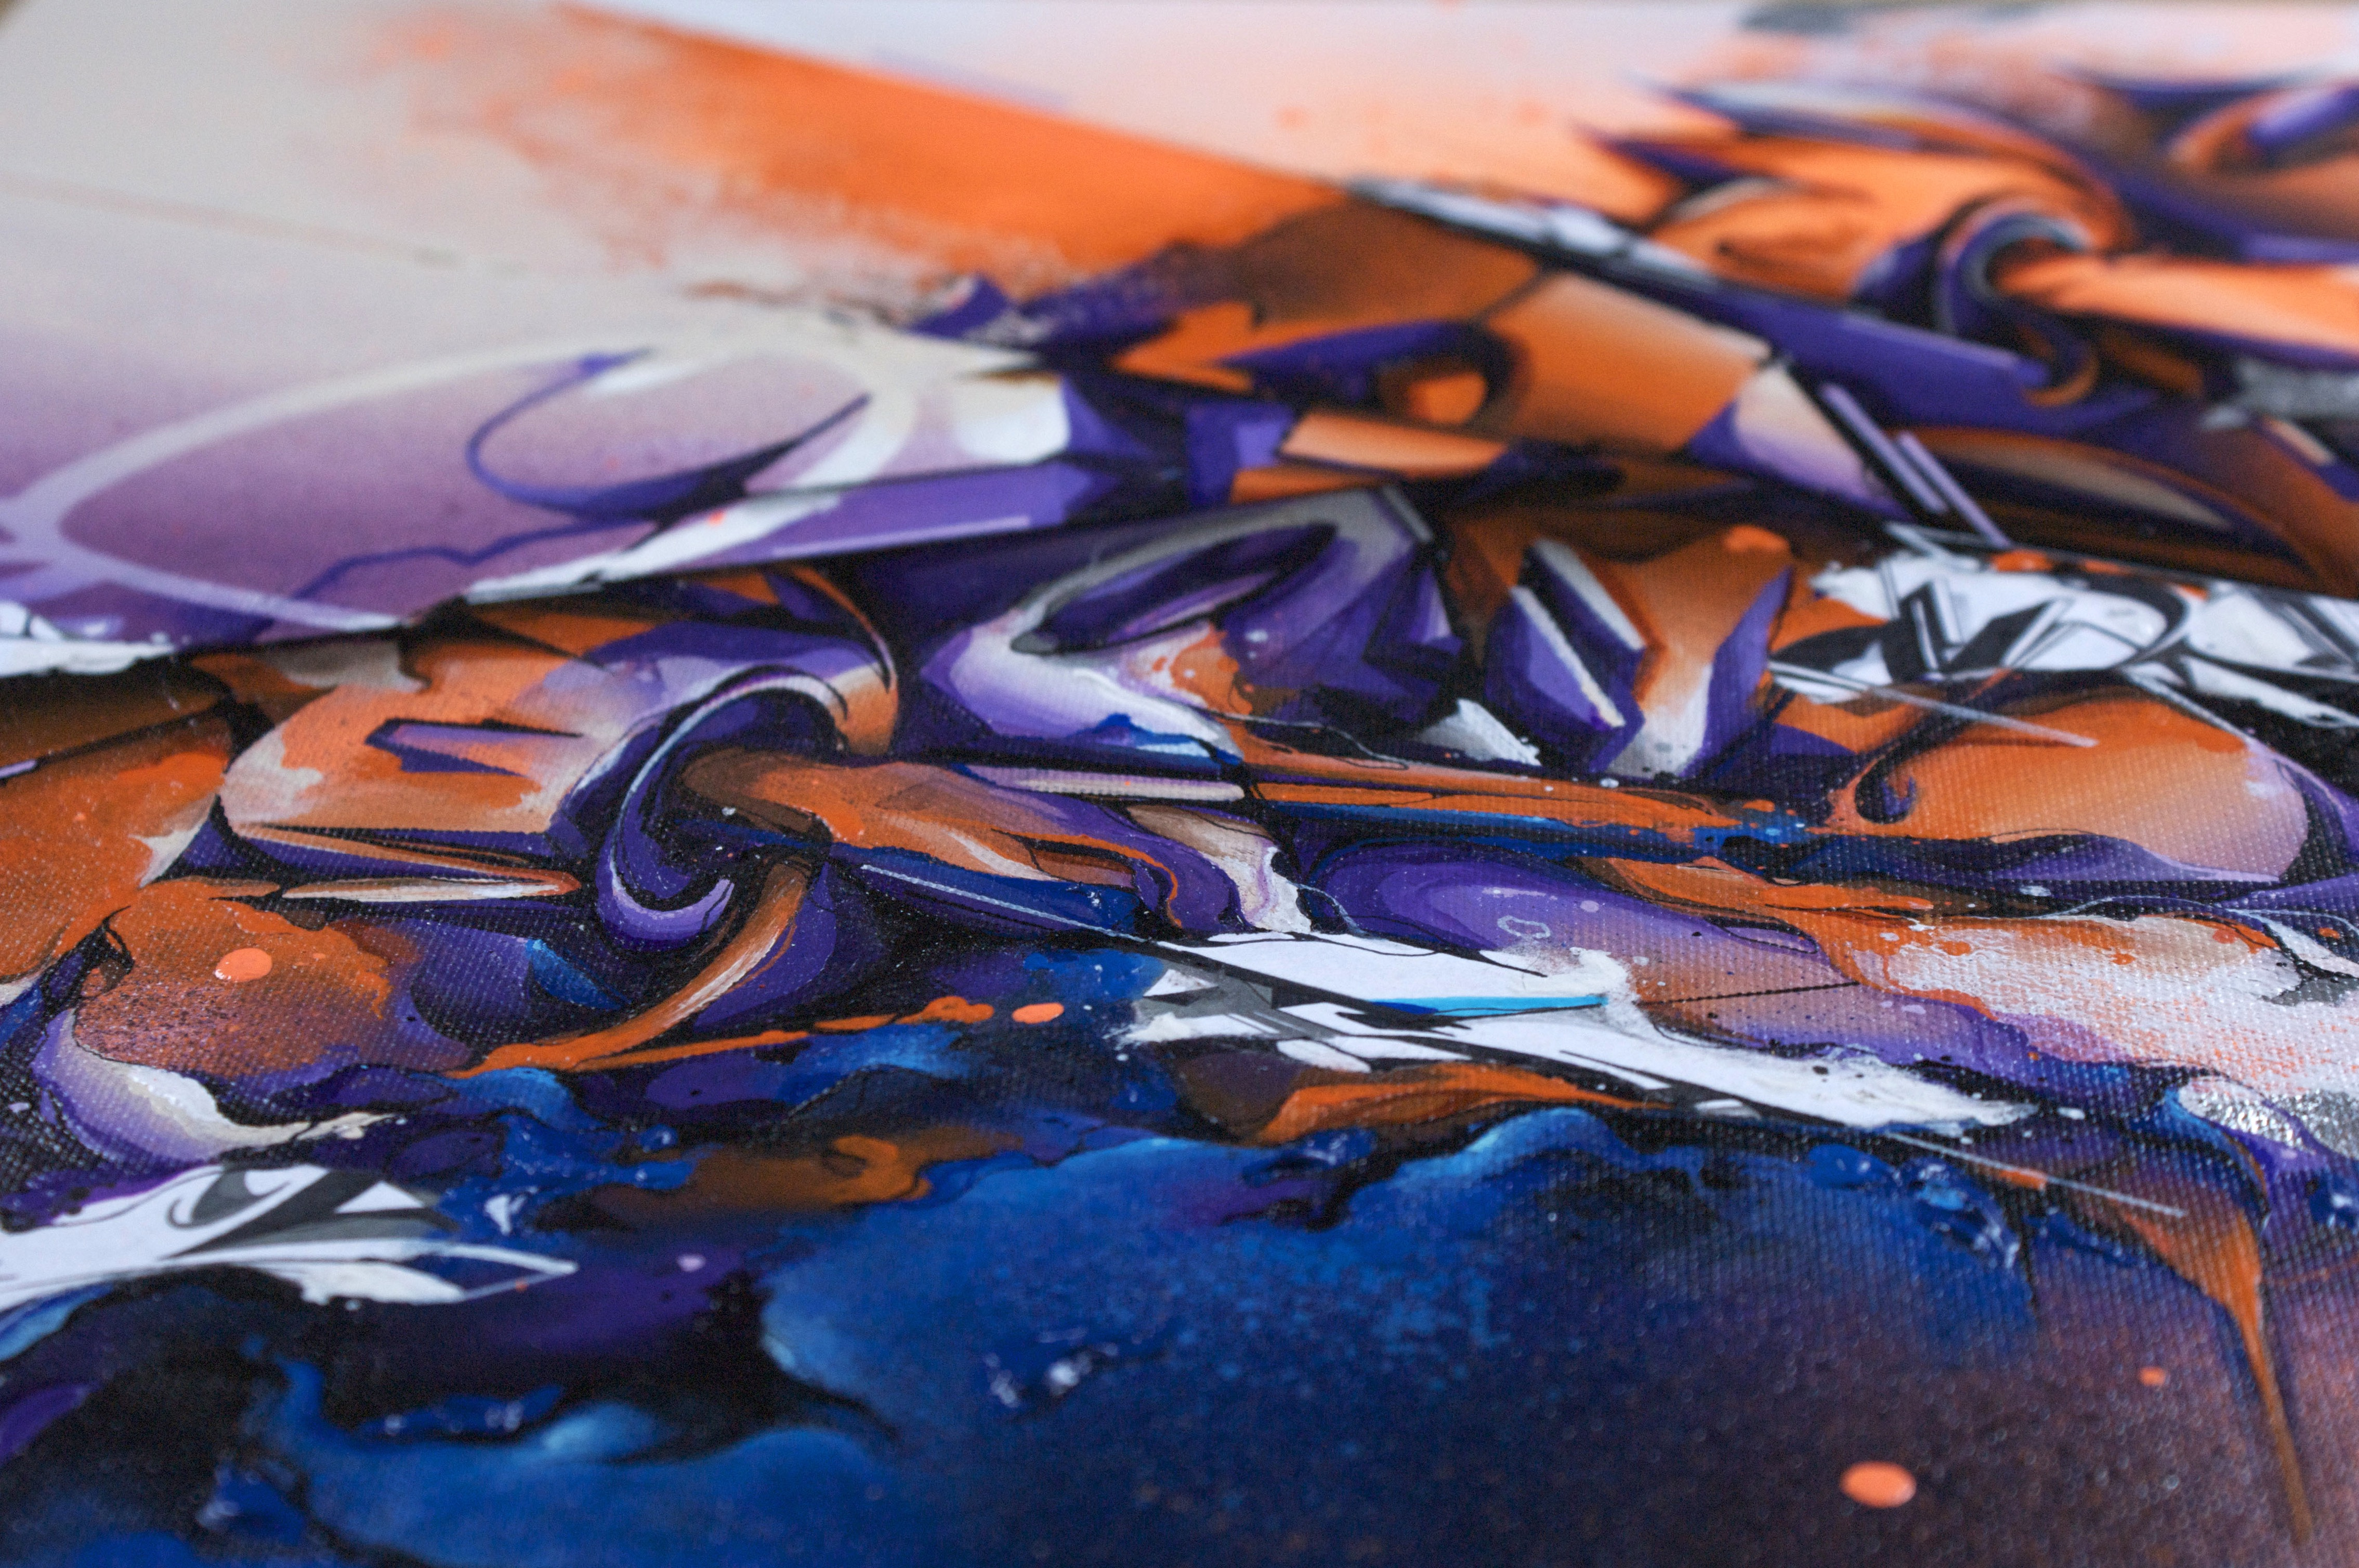 A work by Does - Migraine canvas detail 4